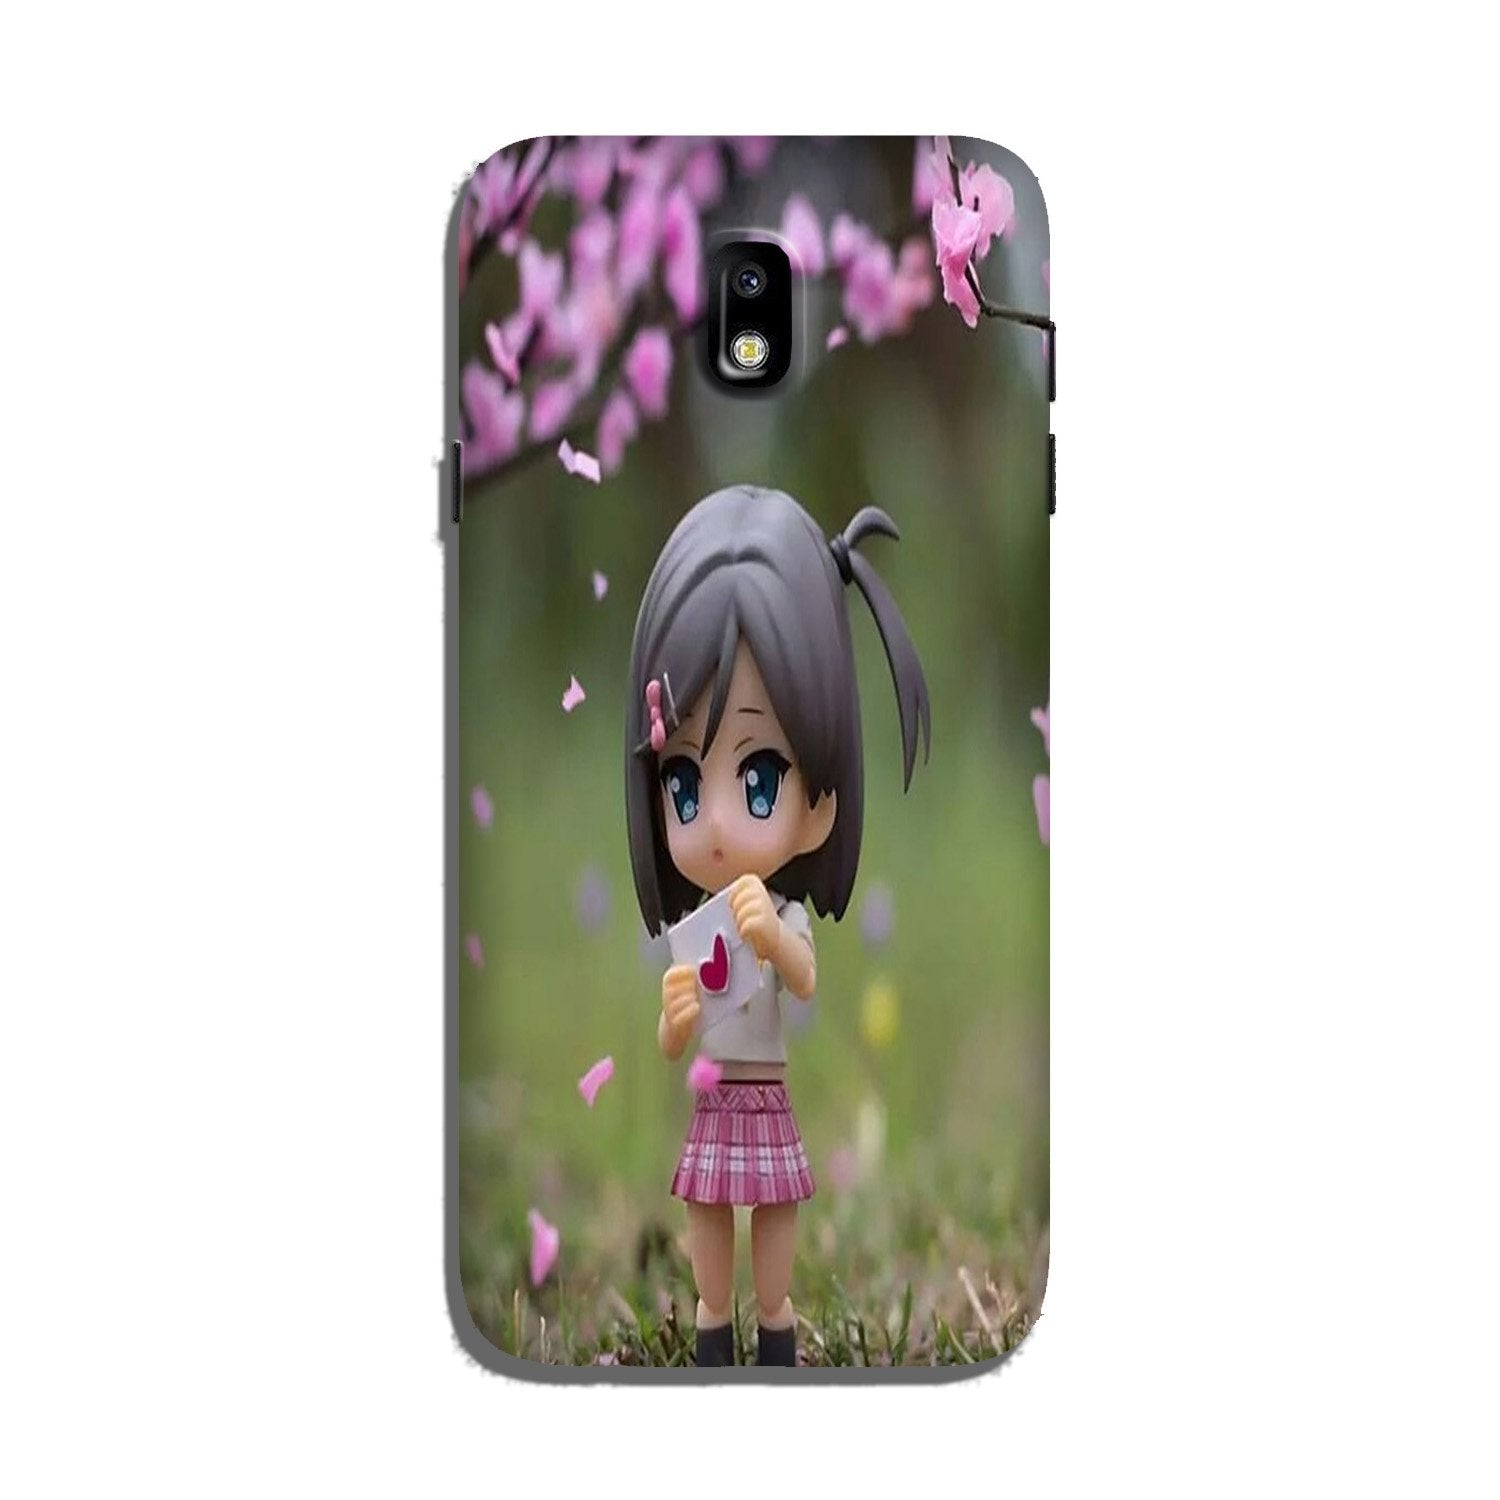 Cute Girl Case for Galaxy J7 Pro